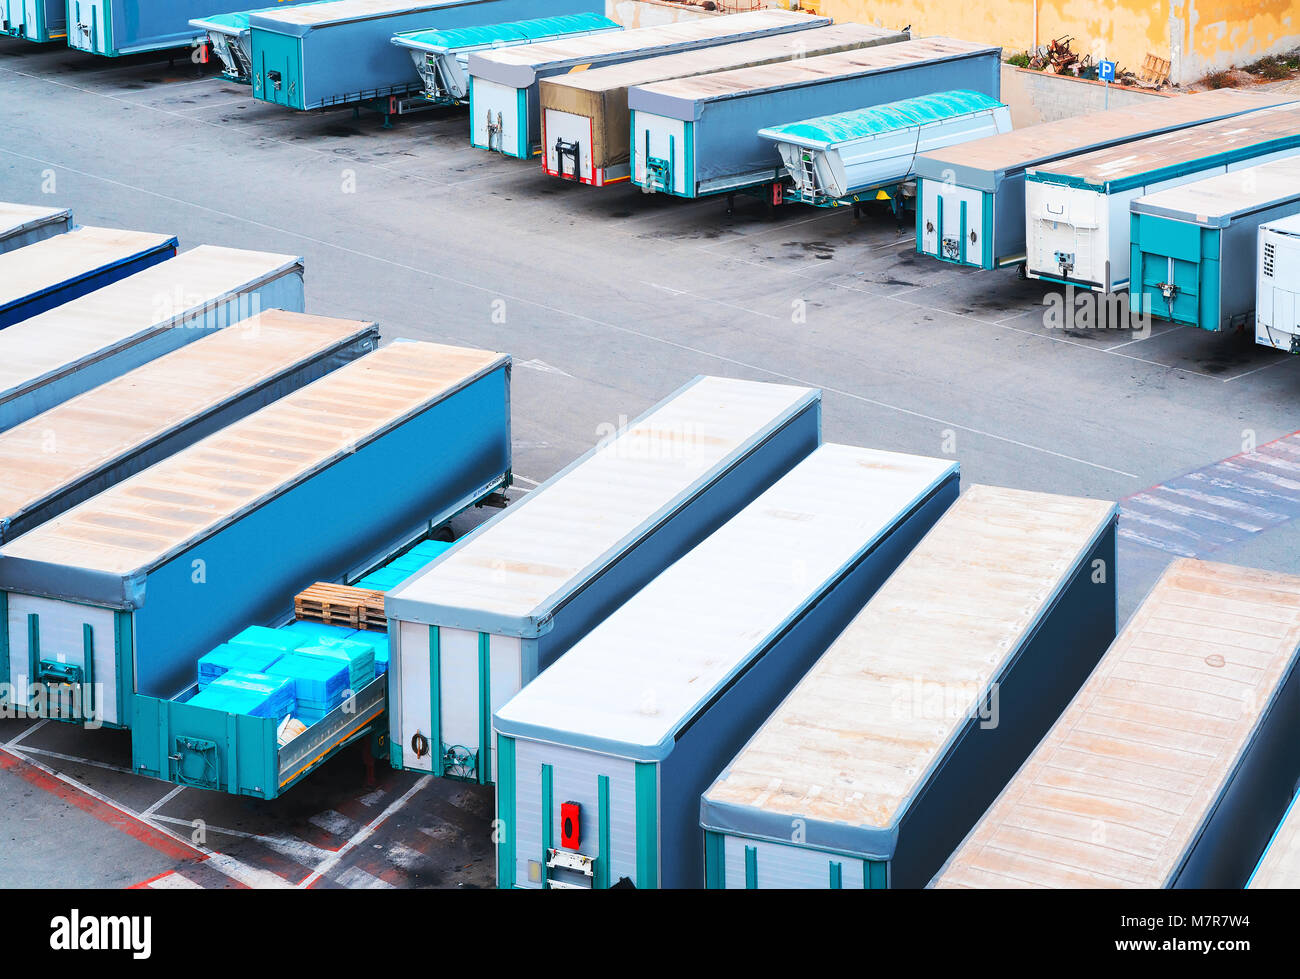 Waggons of the vans in the port of Cagliari, Sardinia, Italy - Stock Image